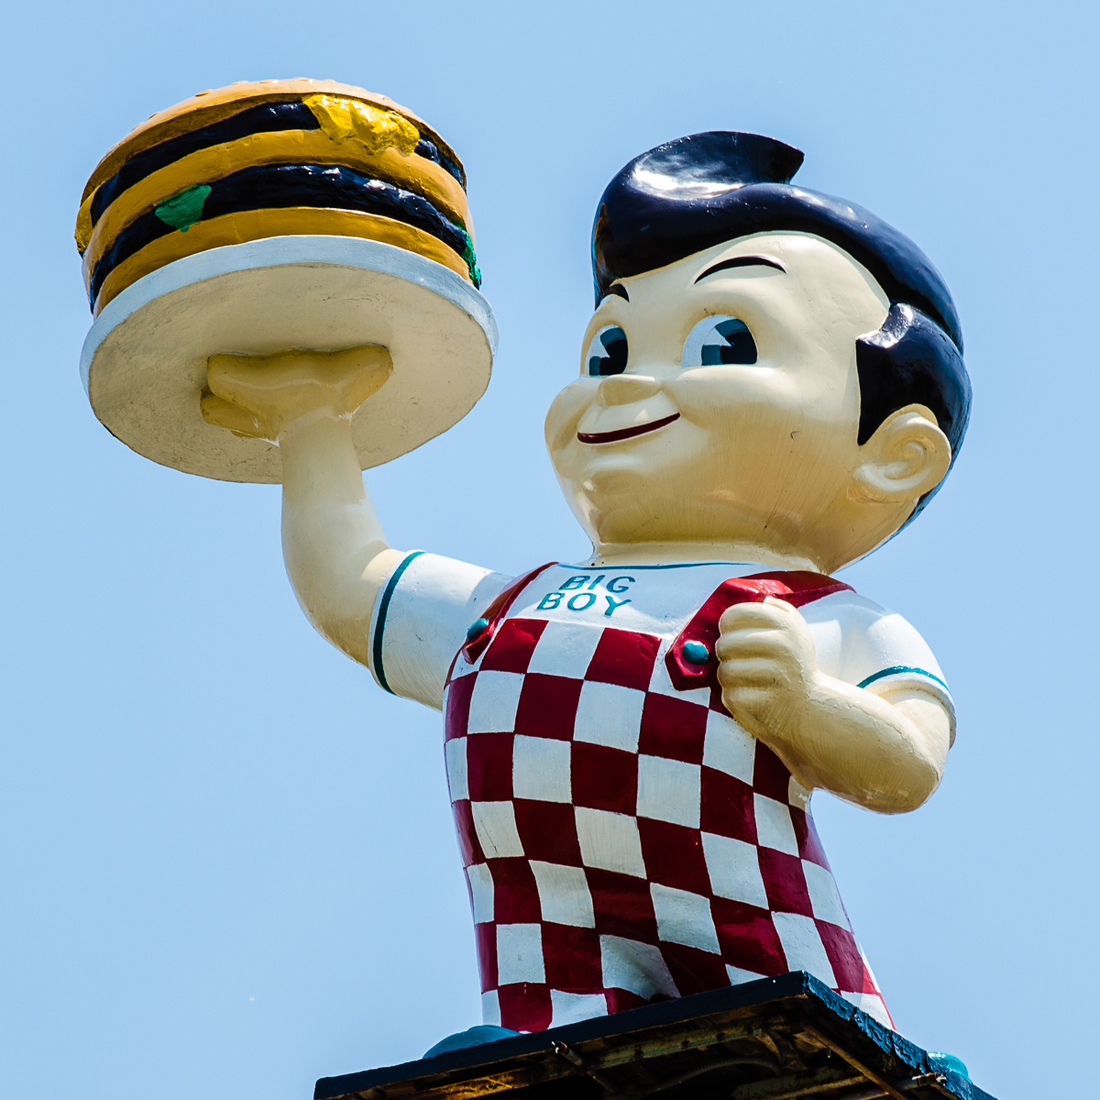 Northville, Mich. and Surrounds Livonia, Michigan - Big Boy